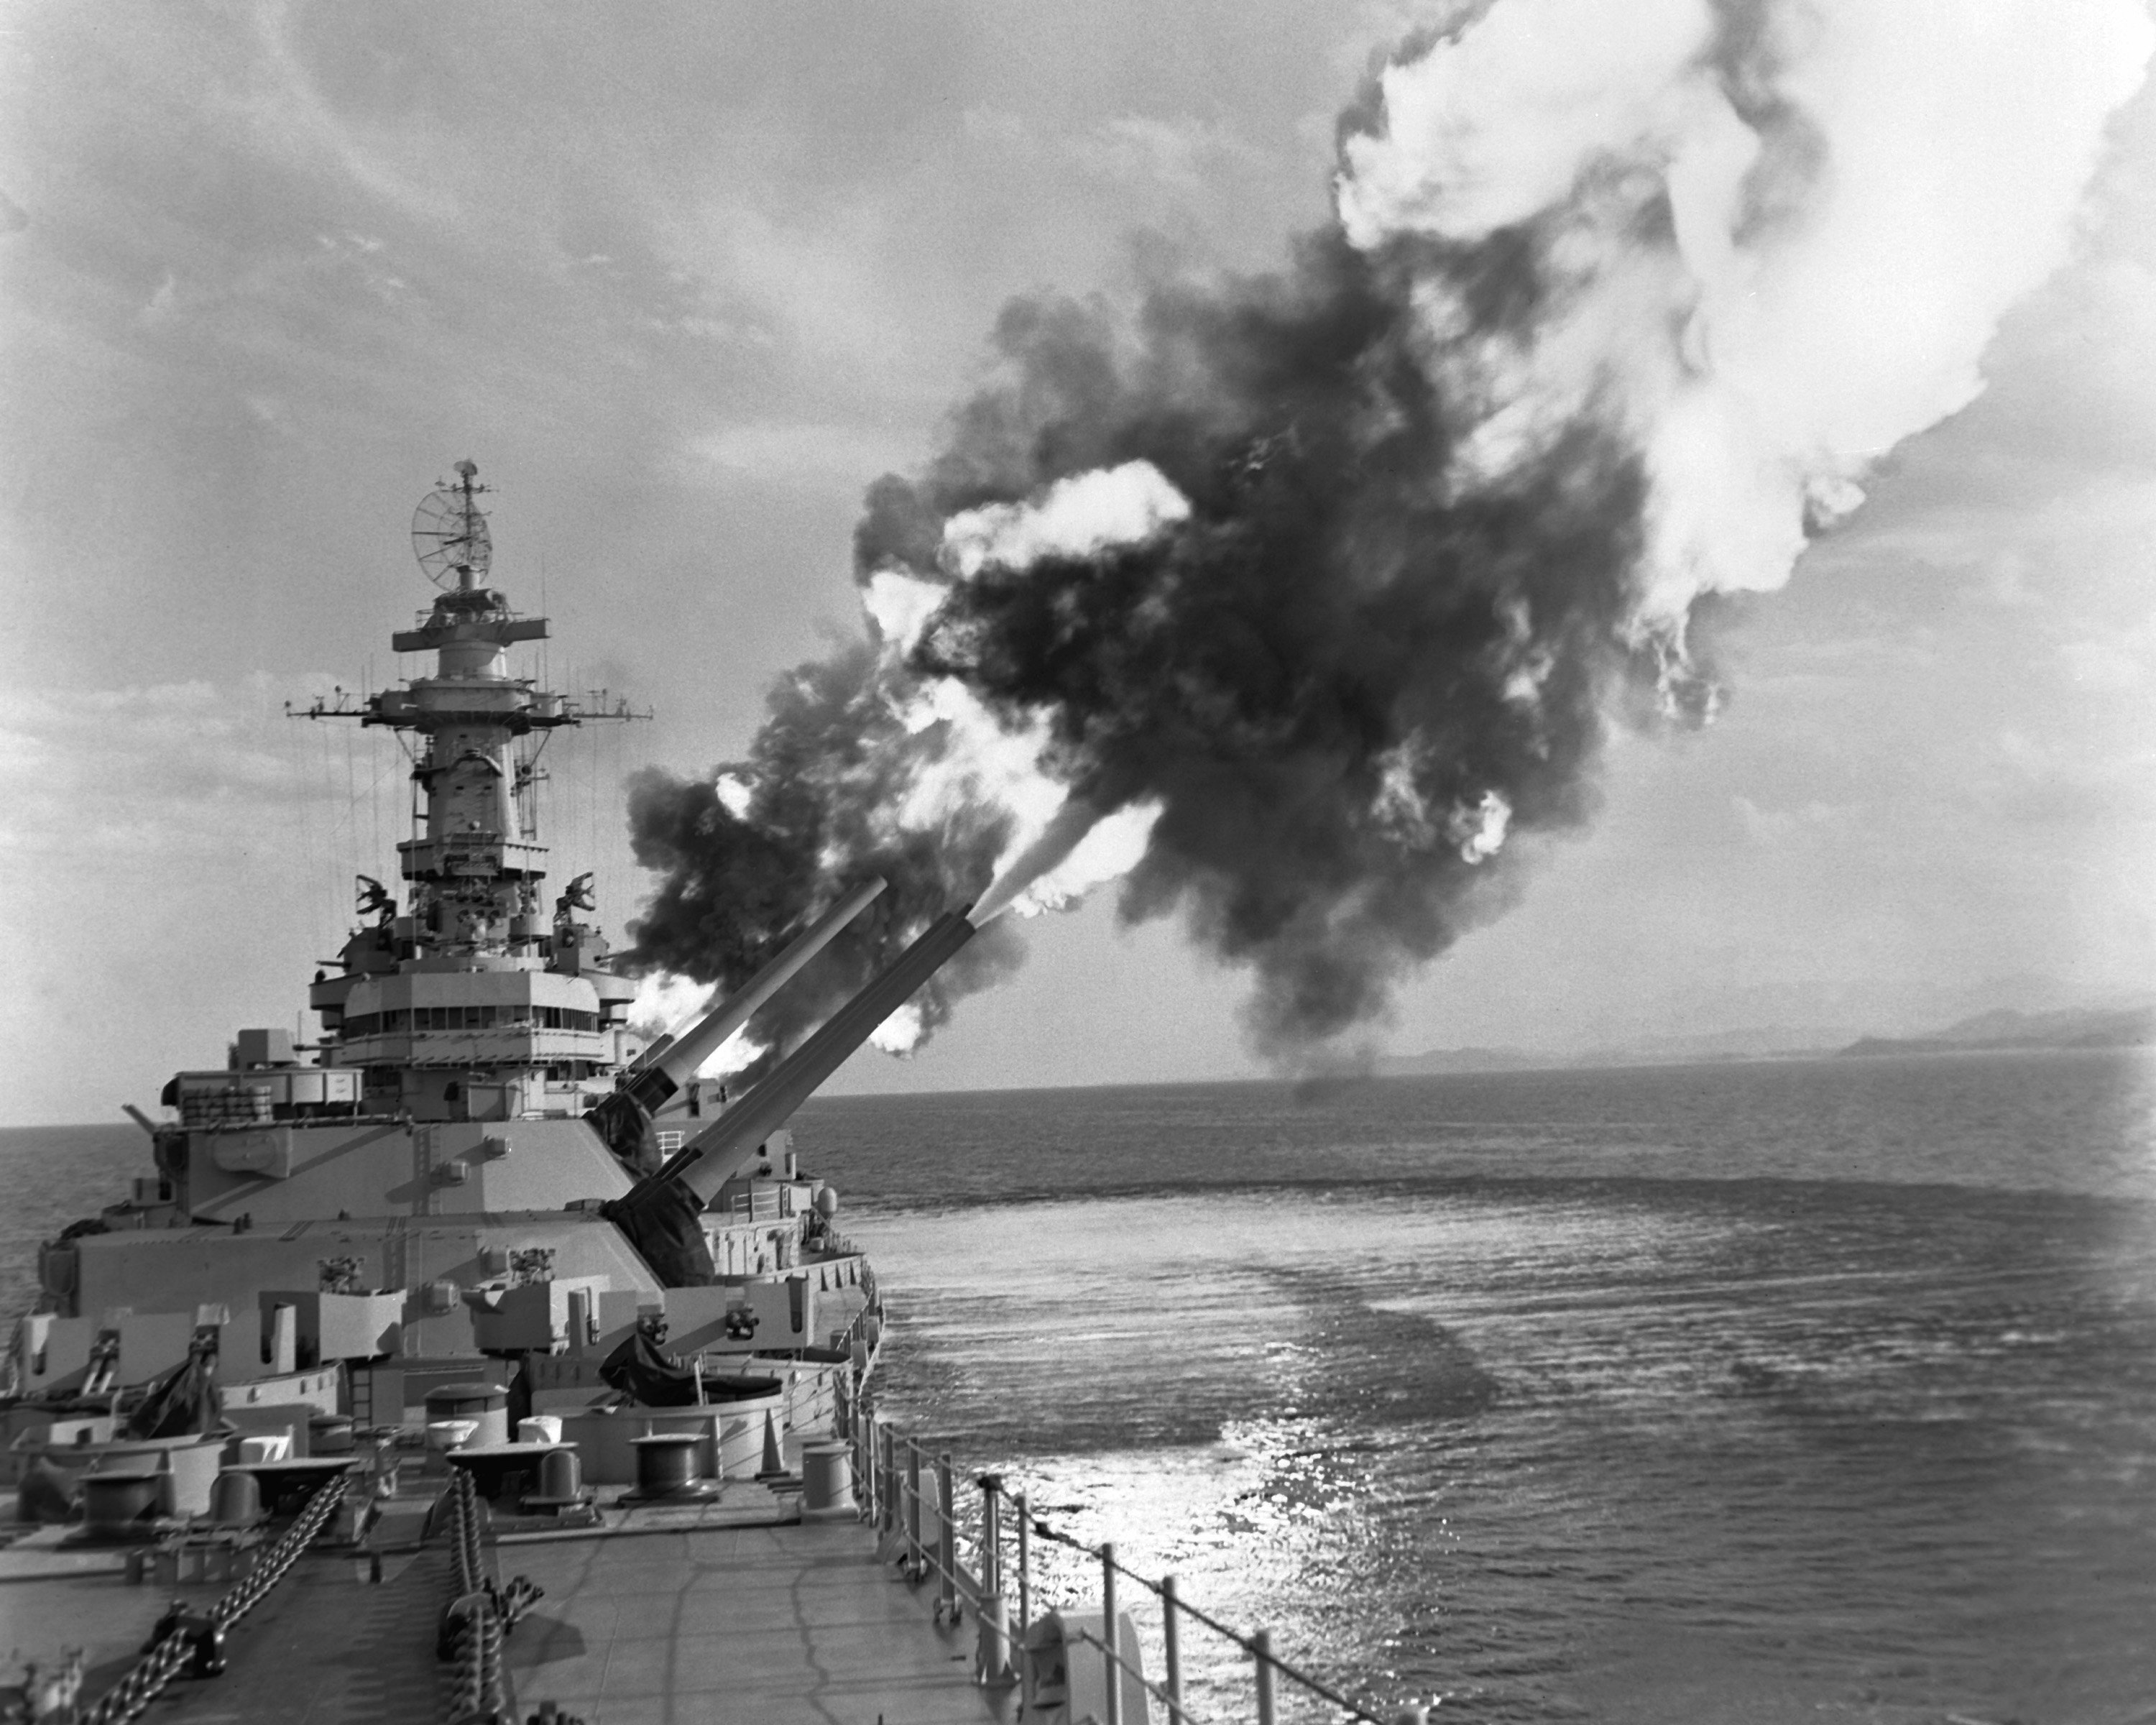 The USS New Jersey launching an artillery bombardment in Korea, 1953. (Wikimedia)